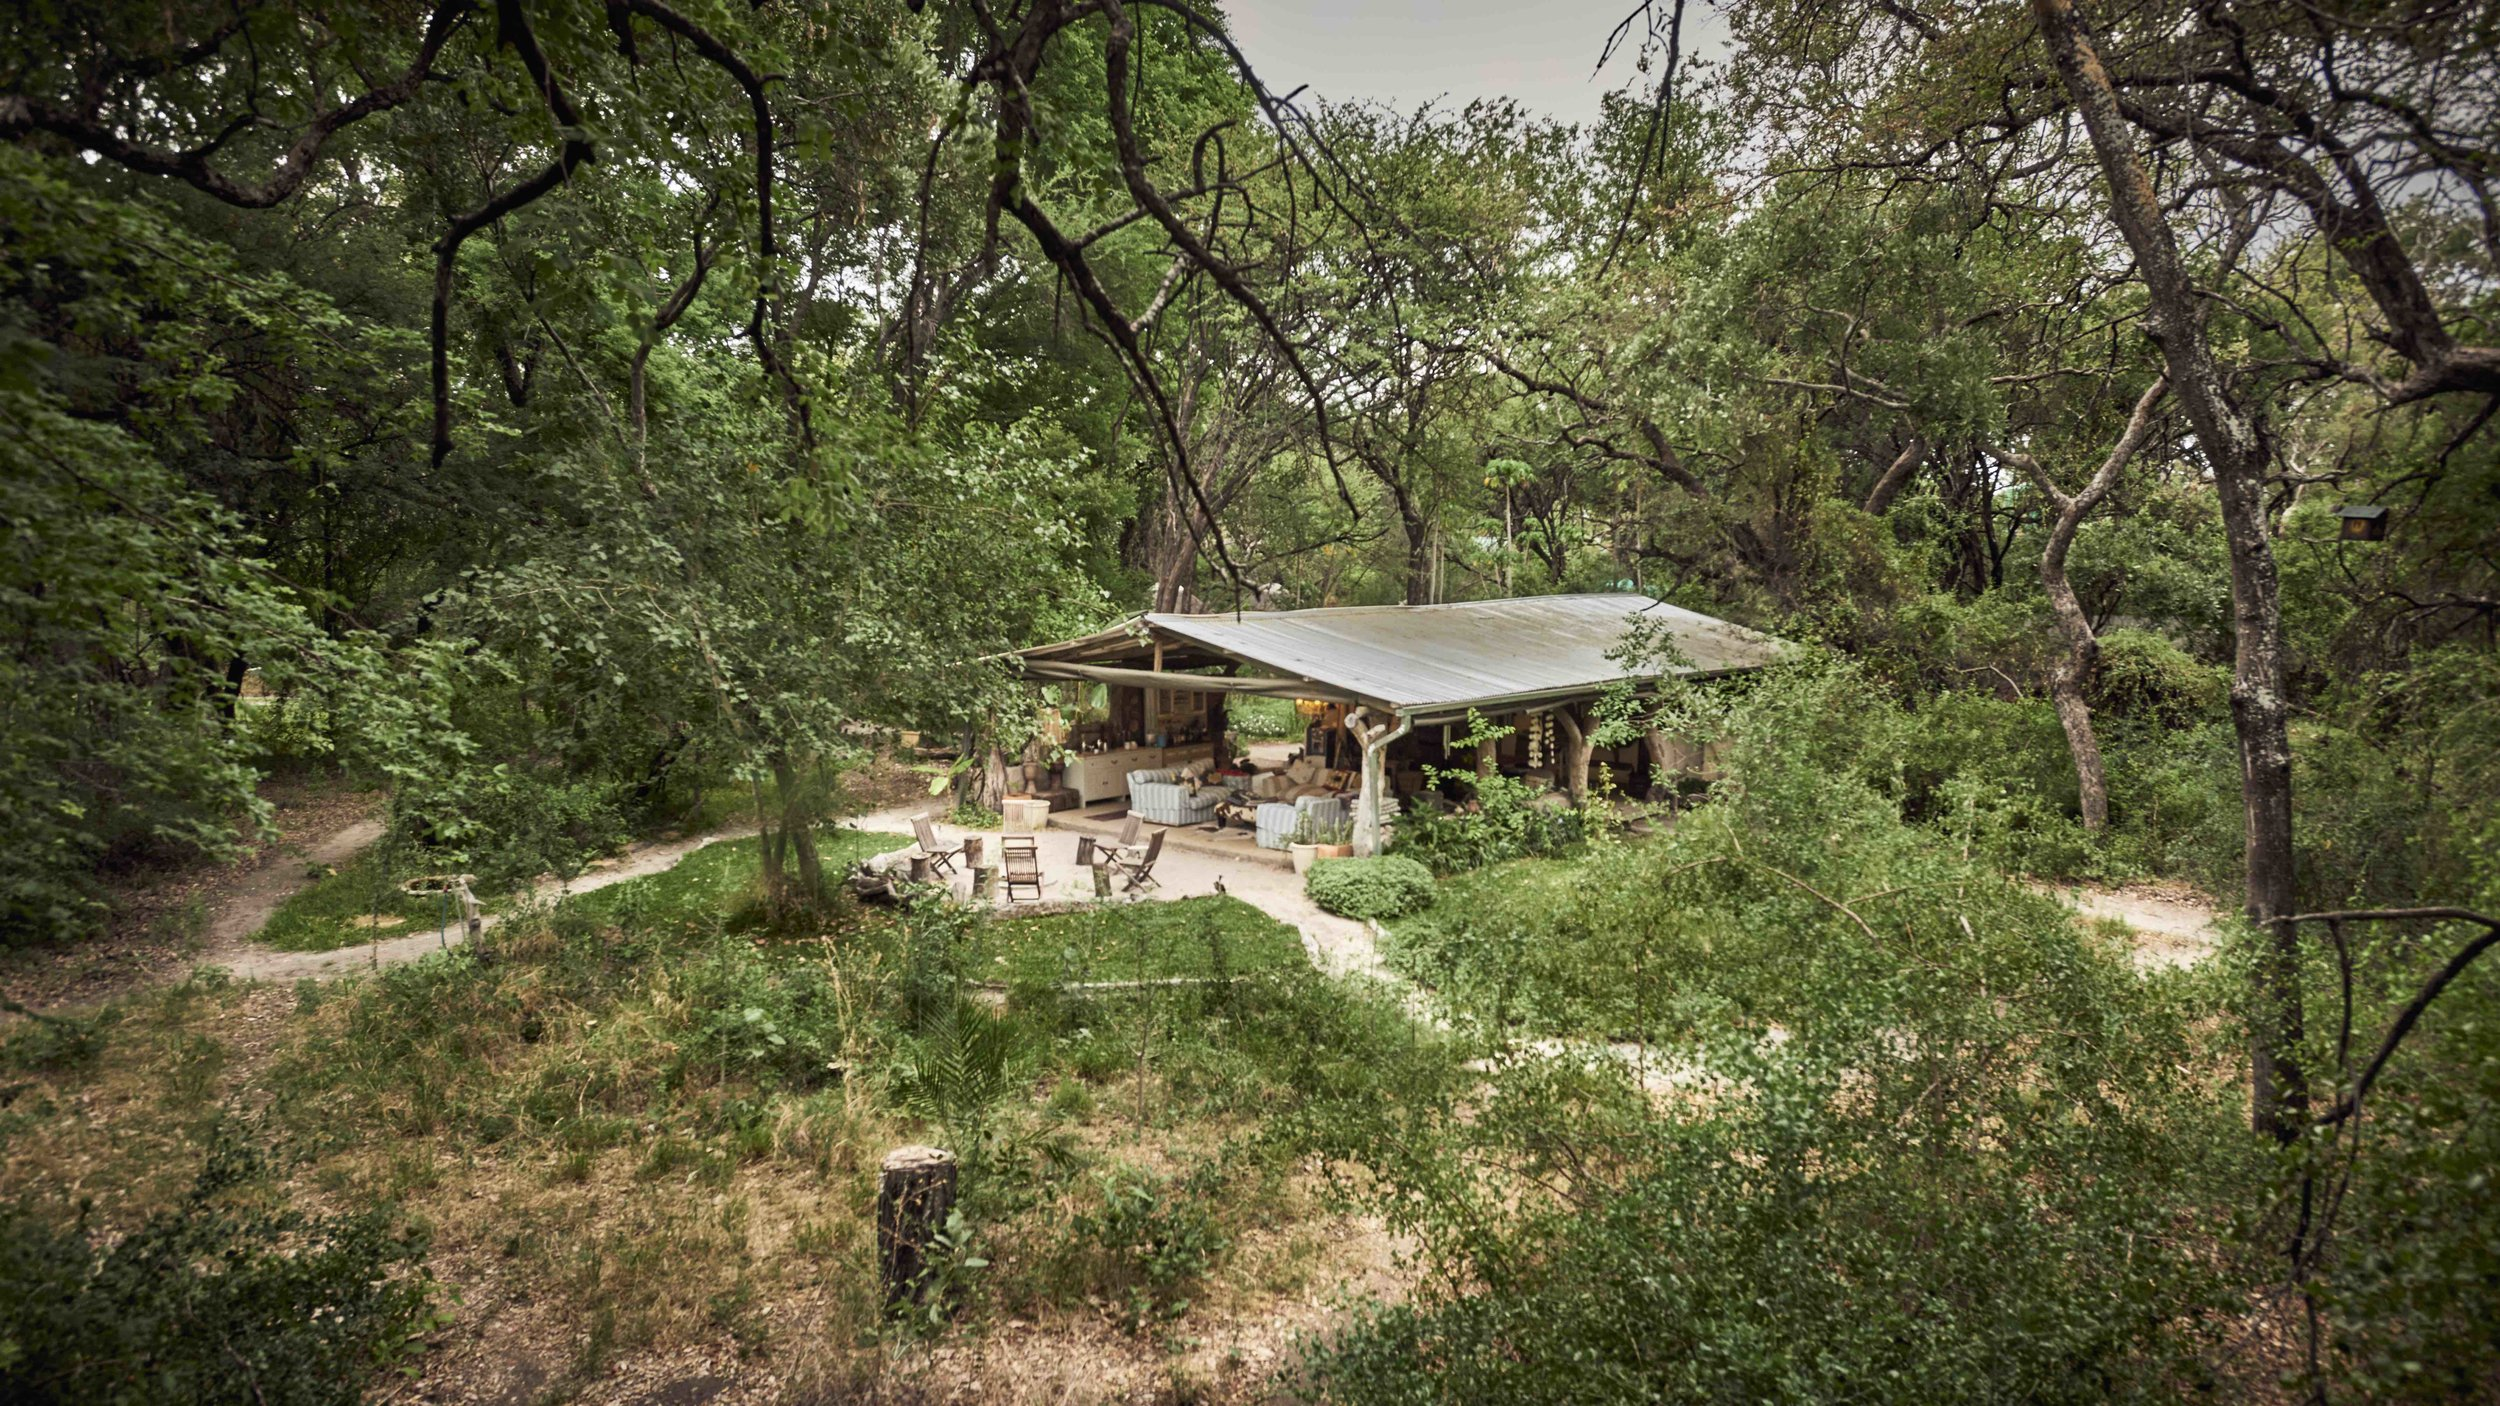 Tucked away in a secret ancient woodland on an island in the floodplains of the Okavango Delta